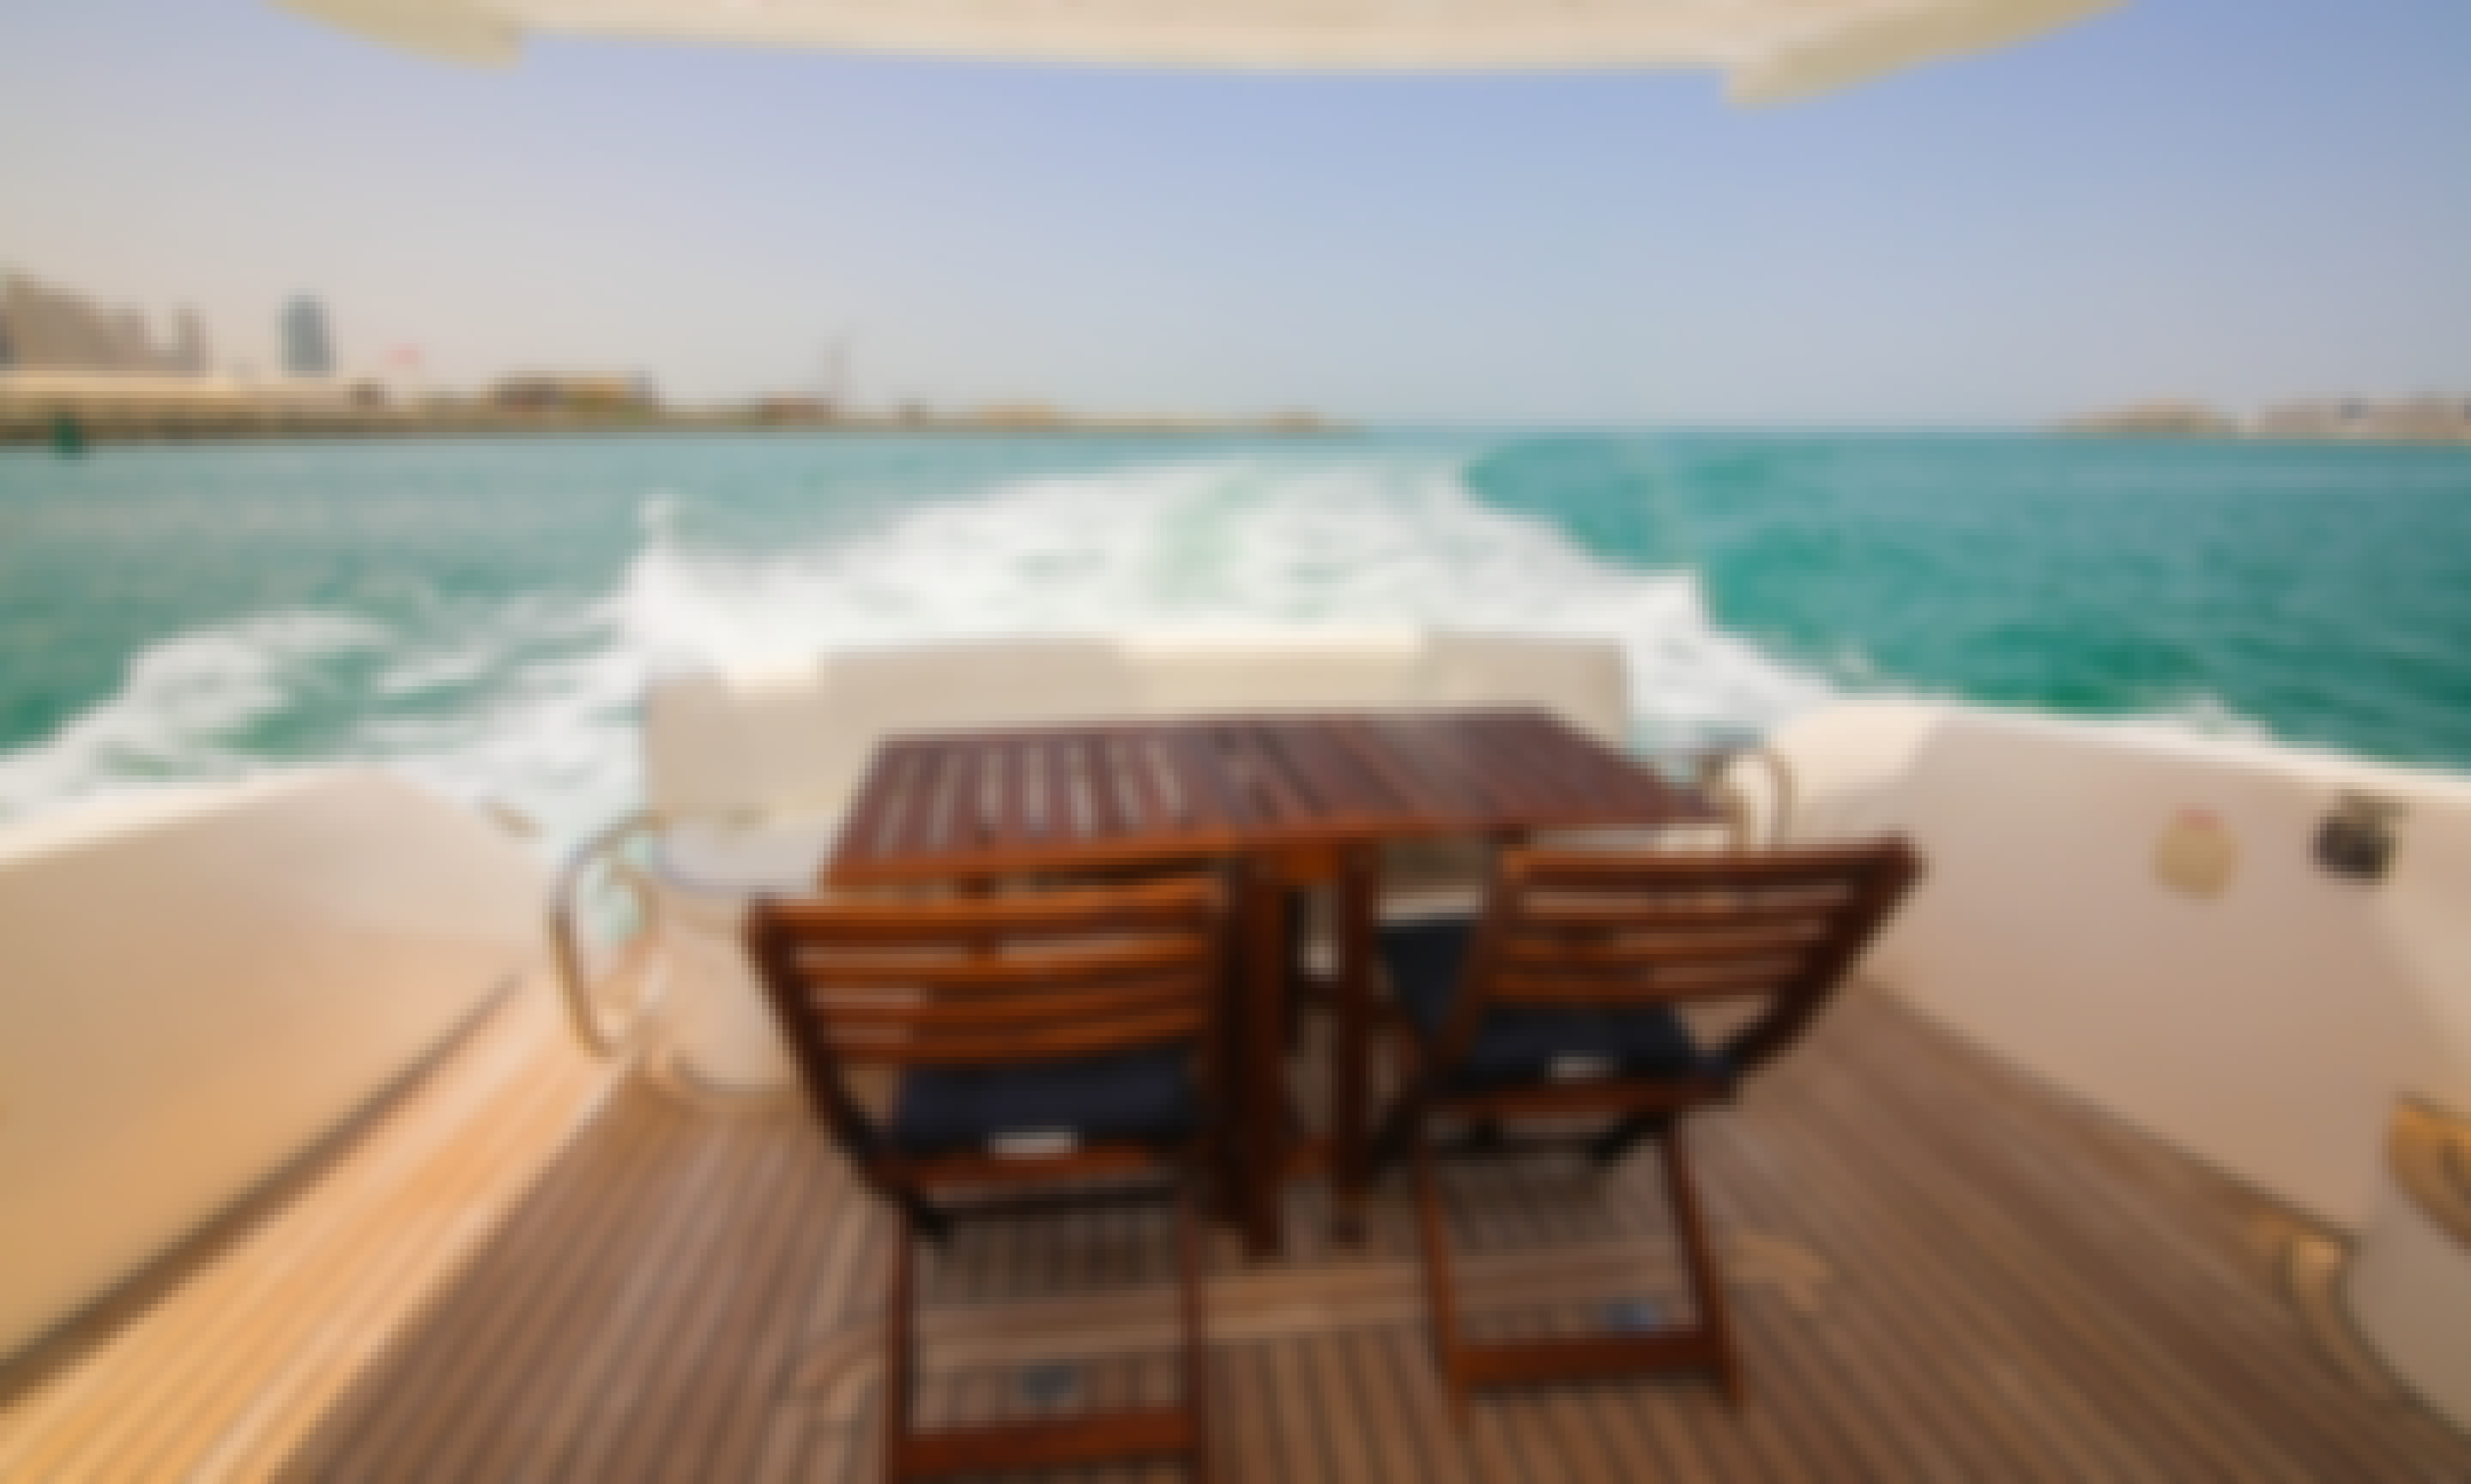 Rent Yacht 55ft Motor Yacht for 23 pax from our Standard Collection in Dubai!